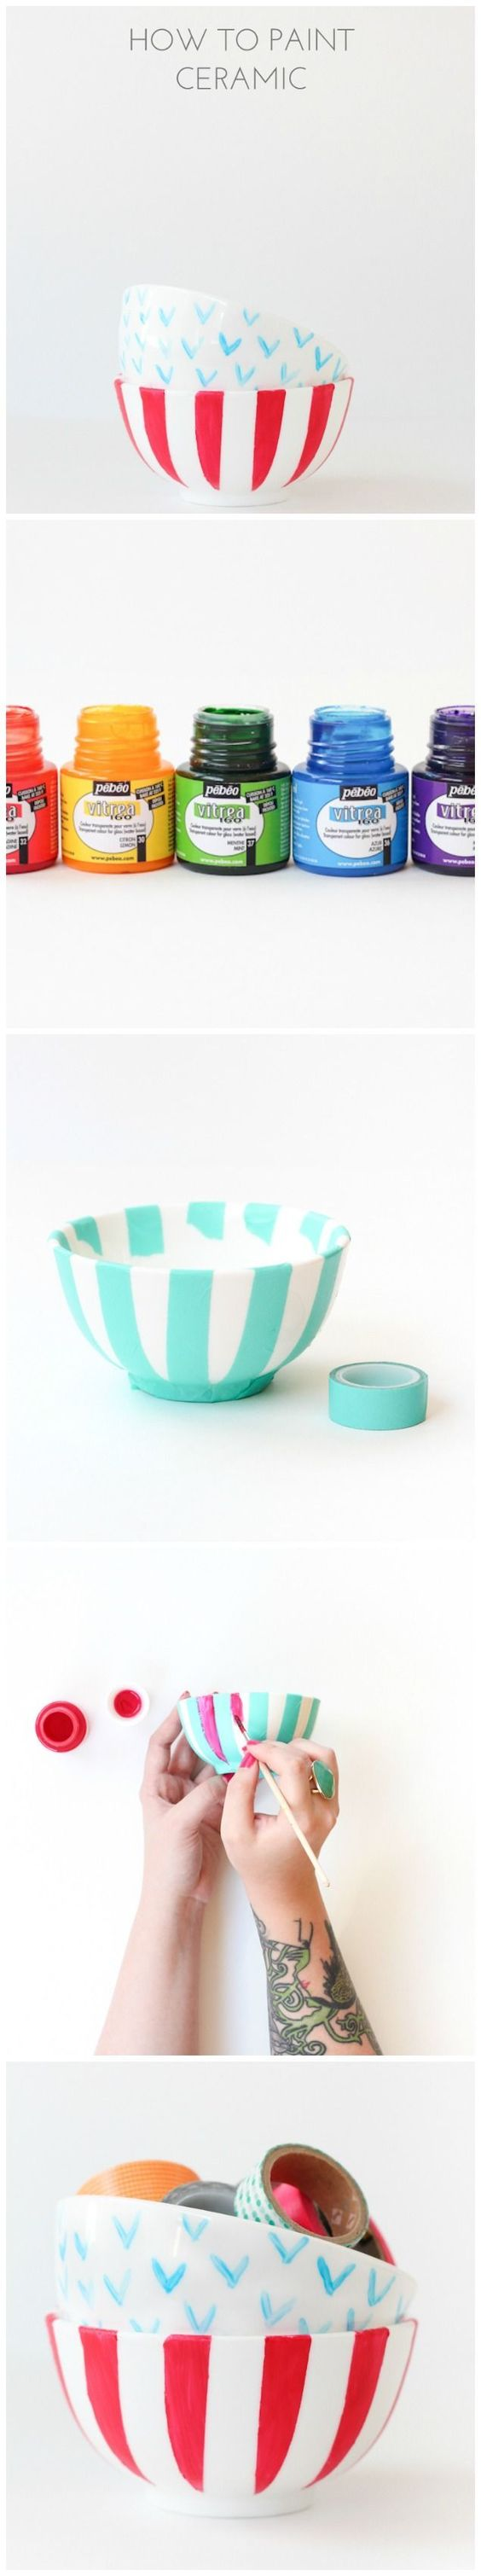 White ceramic plates for crafts - How To Paint Ceramic China Glass And Make It Dishwasher Safe